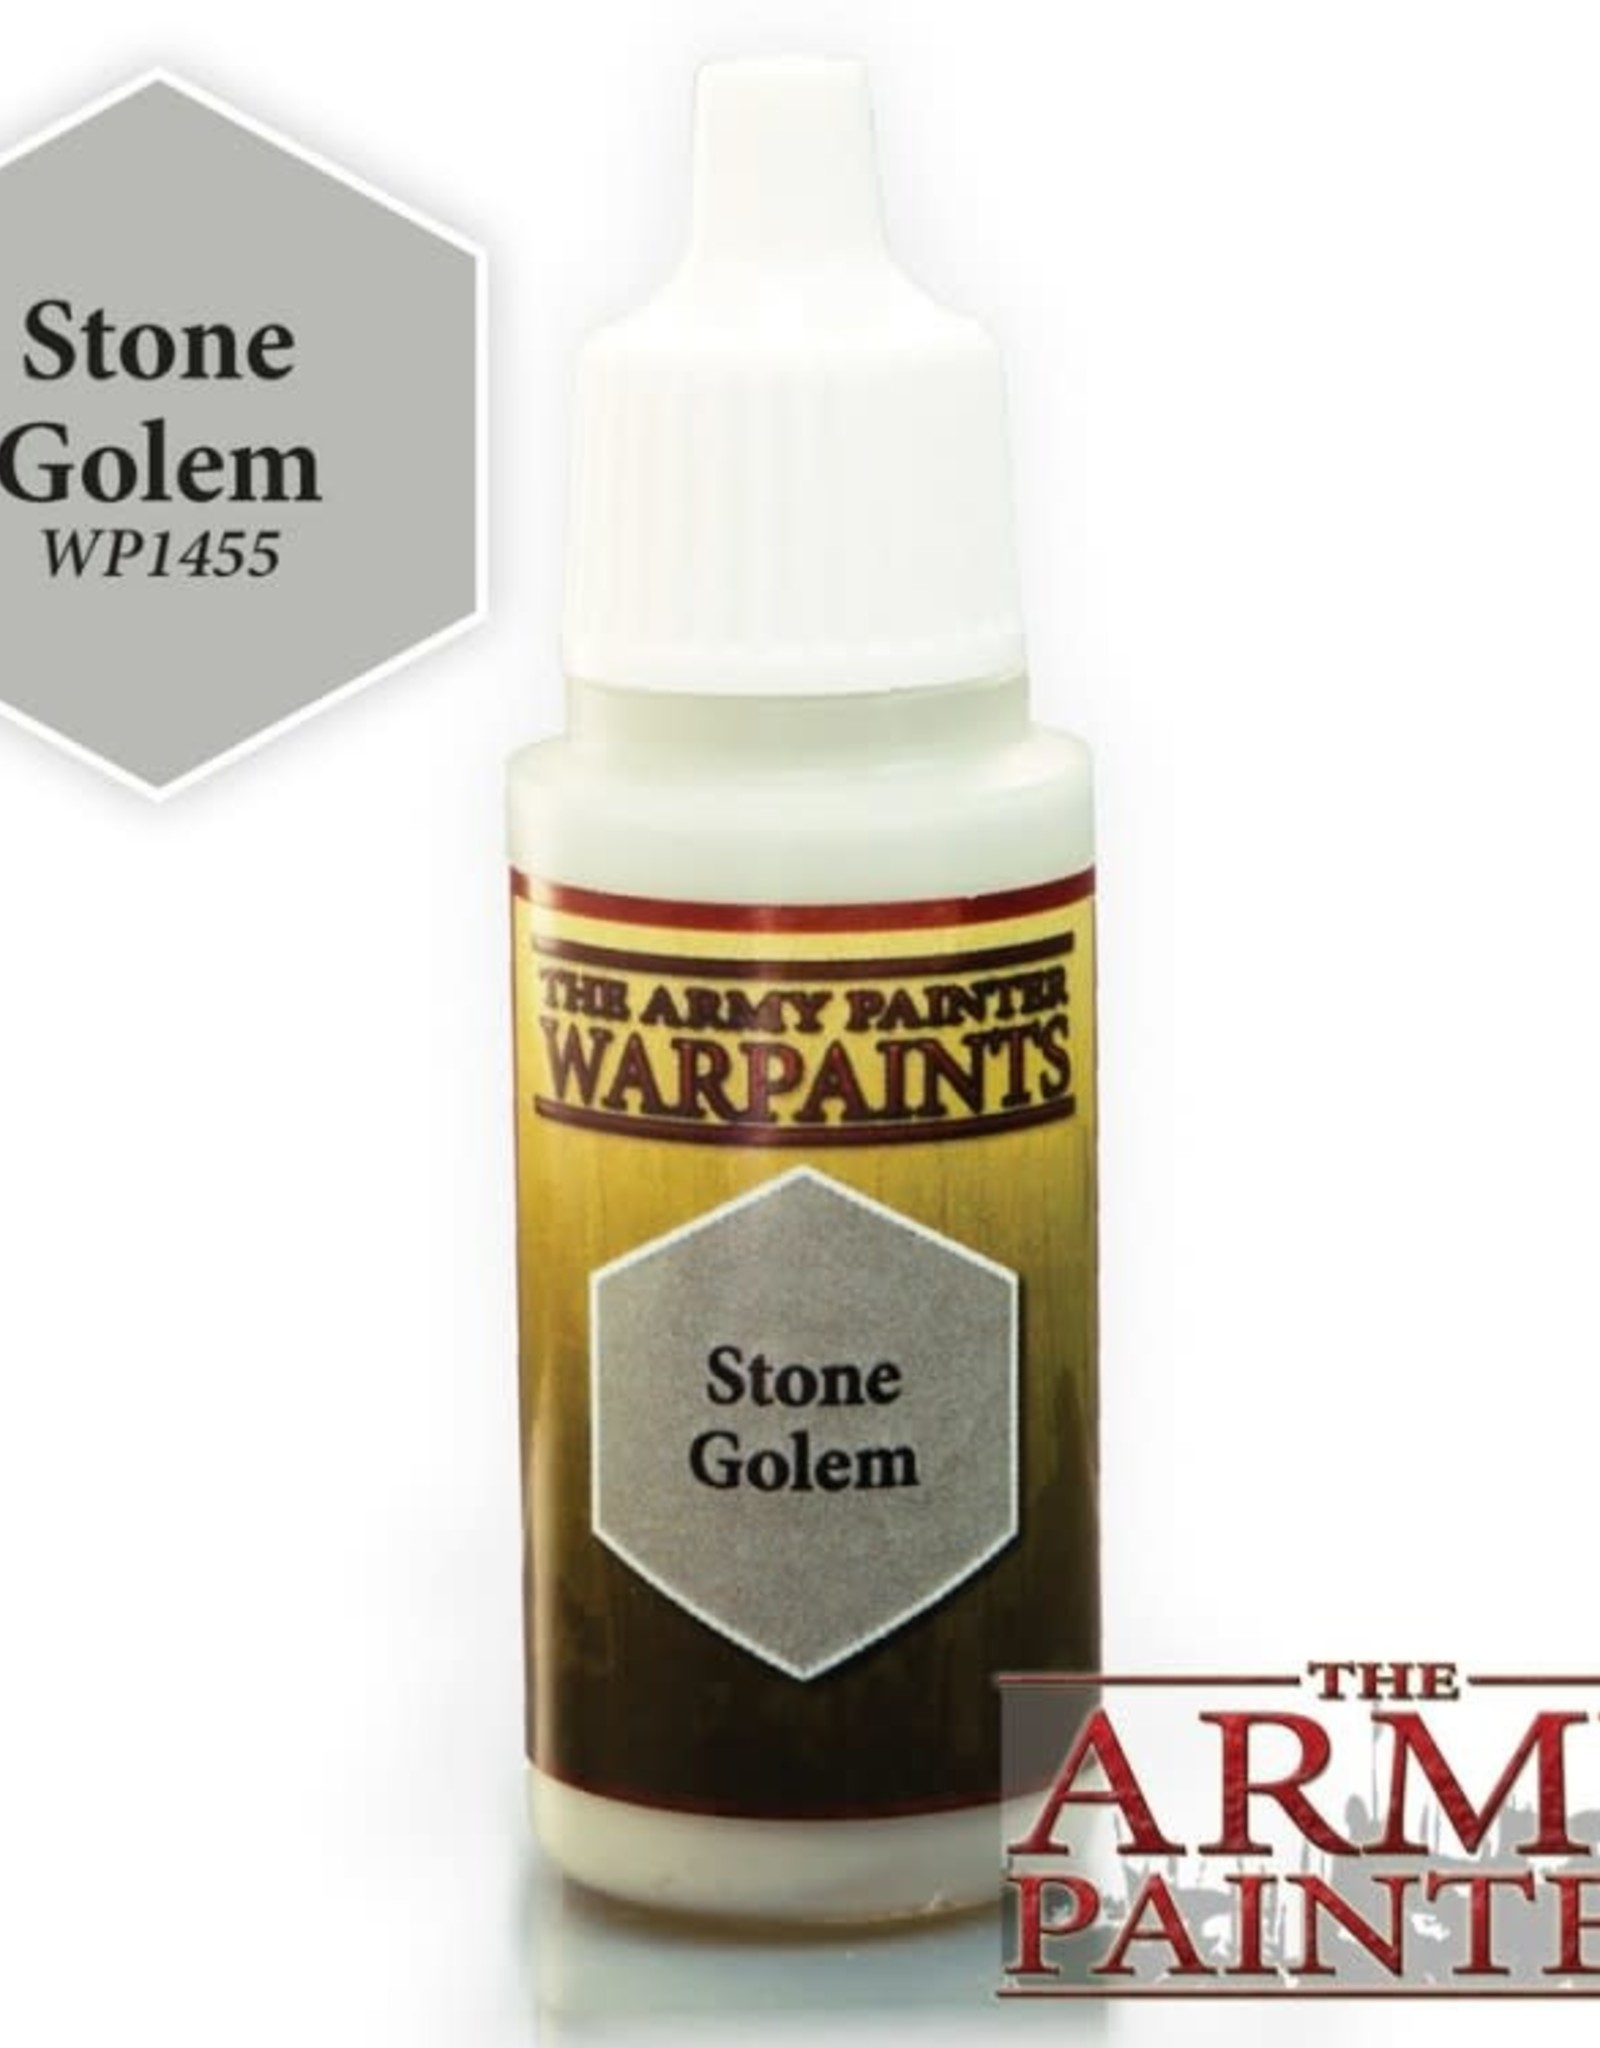 The Army Painter Warpaints - Stone Golem